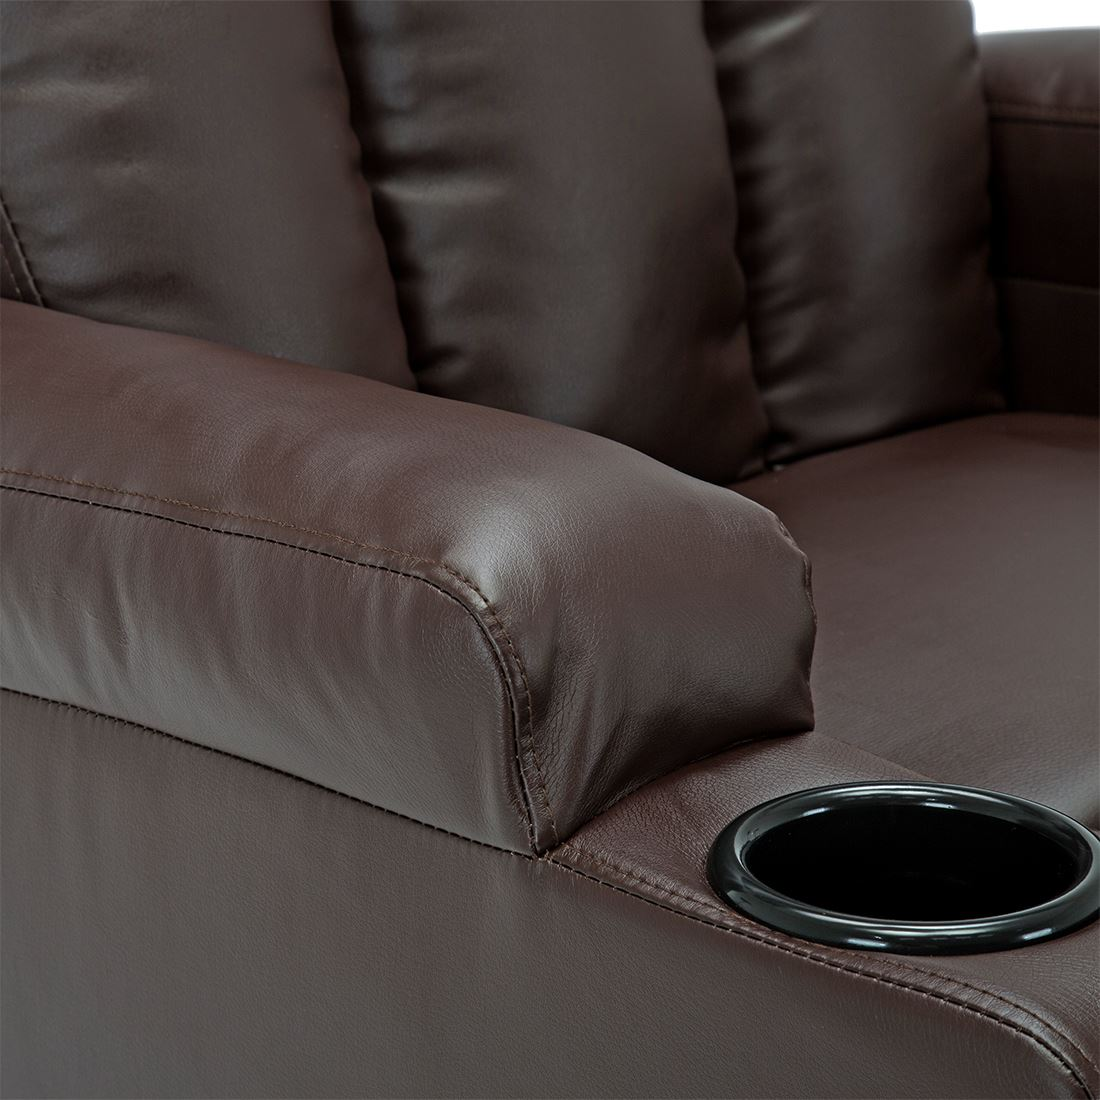 STUDIO-LEATHER-RECLINER-w-DRINK-HOLDERS-ARMCHAIR-SOFA-CHAIR-CINEMA-GAMING thumbnail 17